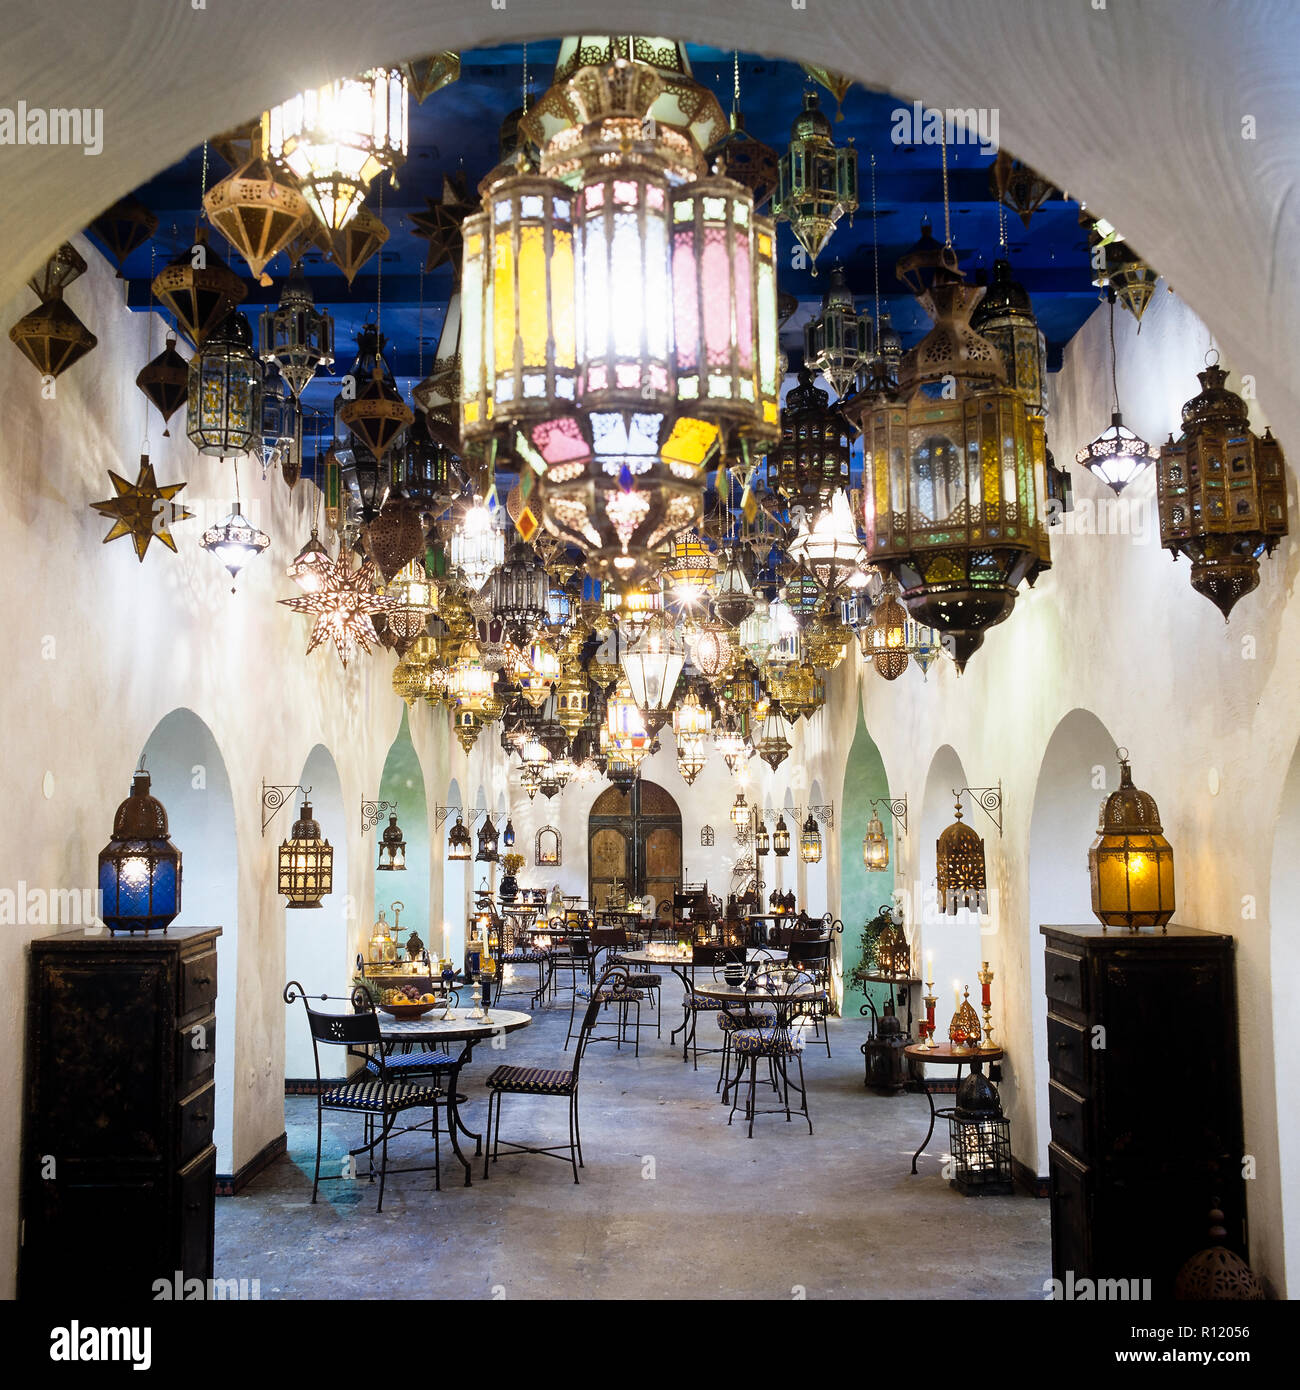 Arabisches Restaurant Stockbild